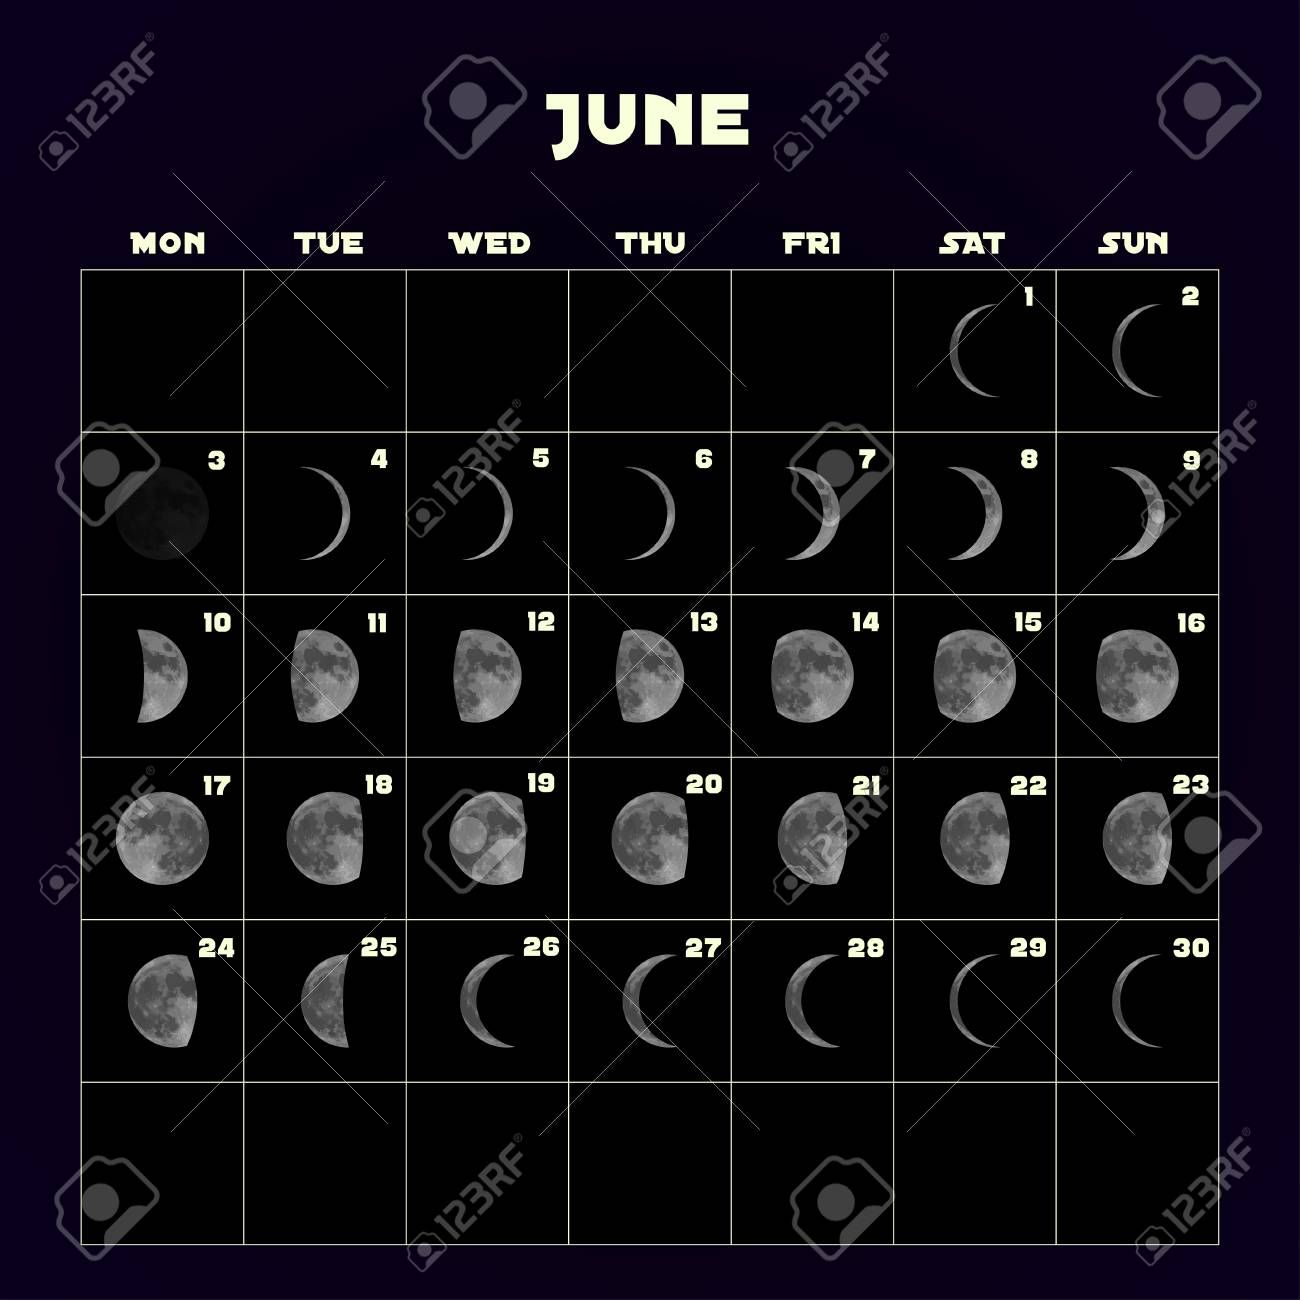 Moon Calendar June 2019 Lunar Phases Moon Phase Calendar New